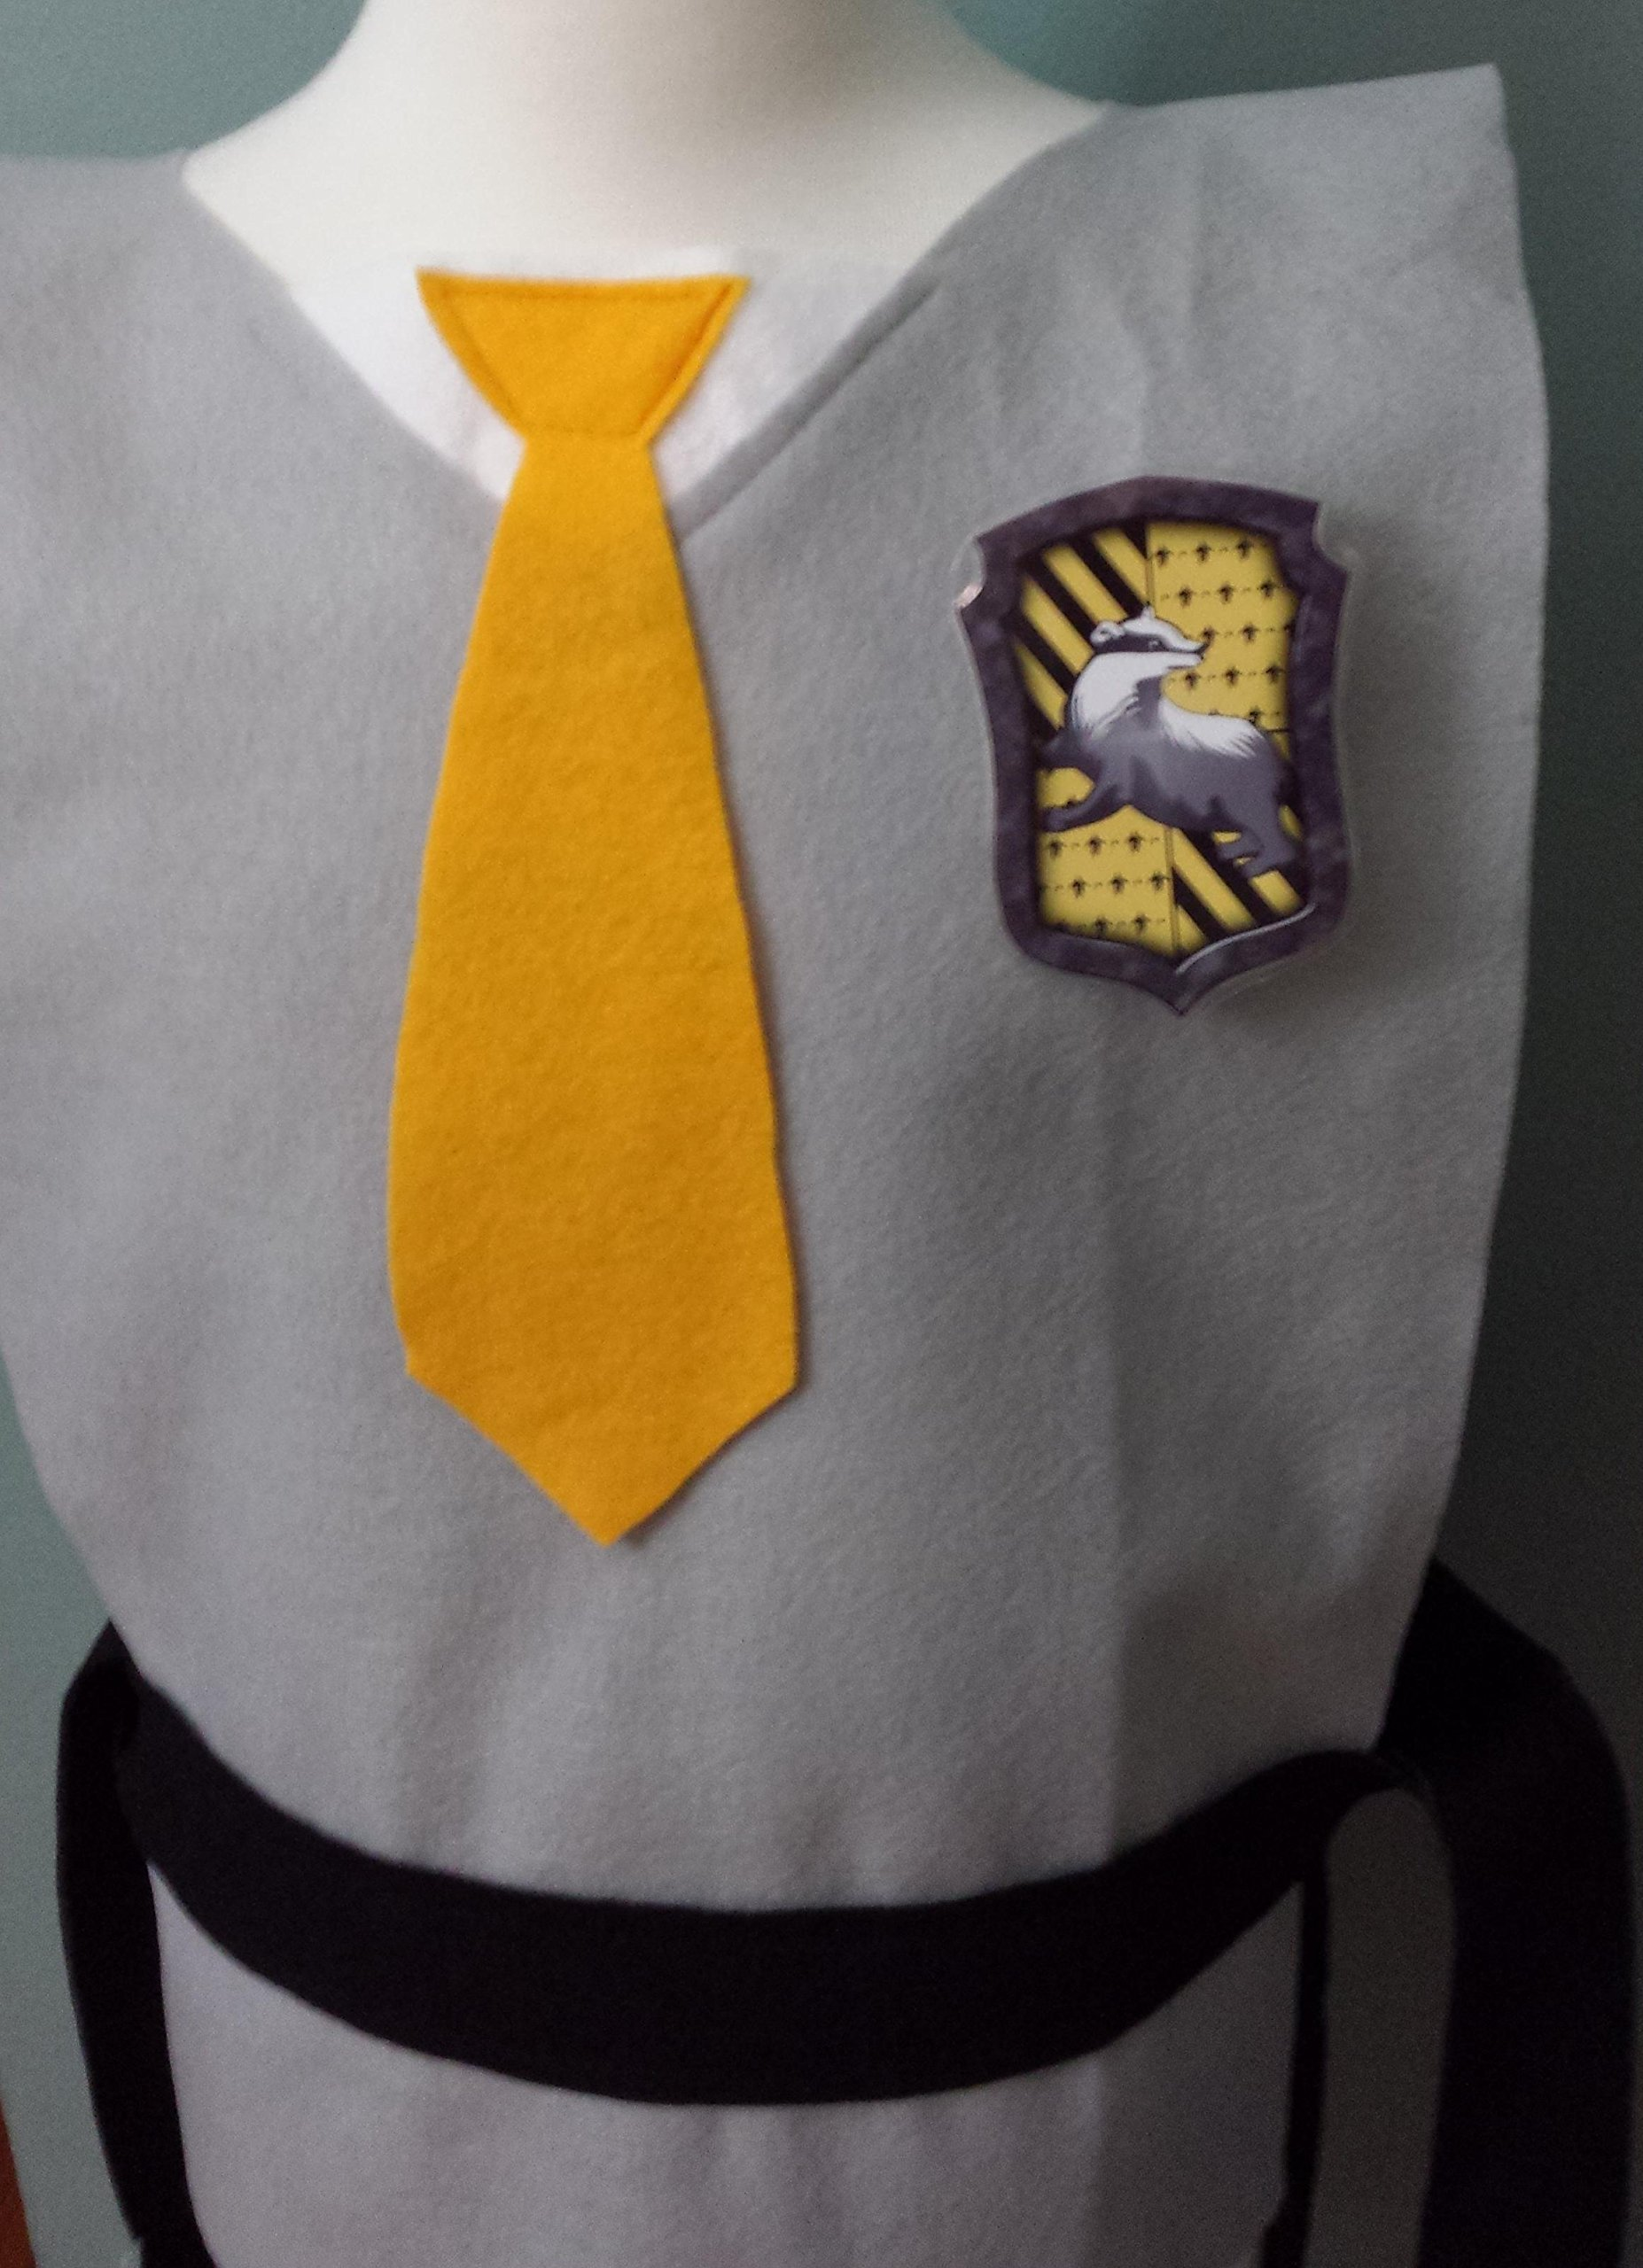 Kids Hufflepuff Costume Tunic - Perfect for under your robe! (Harry Potter/Cedric/Hogwarts) - Baby/Toddler/Kids/Teens/Adult Sizes